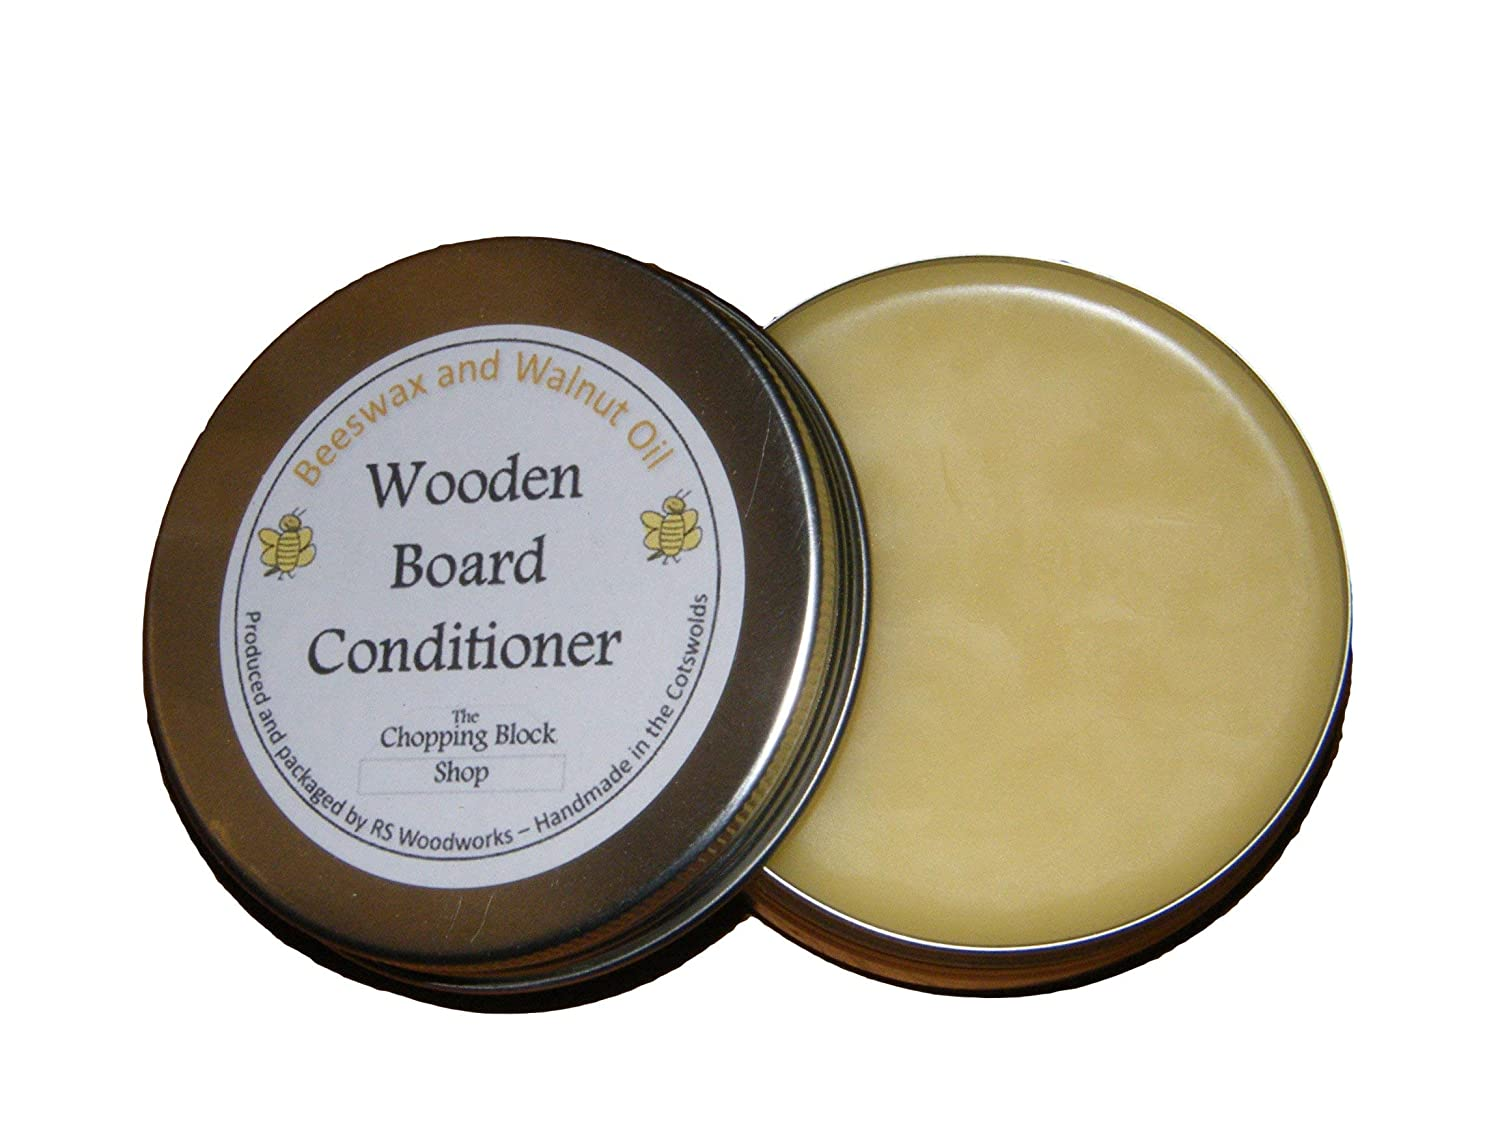 Beeswax and Walnut Oil Polish/Chopping board Conditioning Oil 50g RS Woodworks Ltd